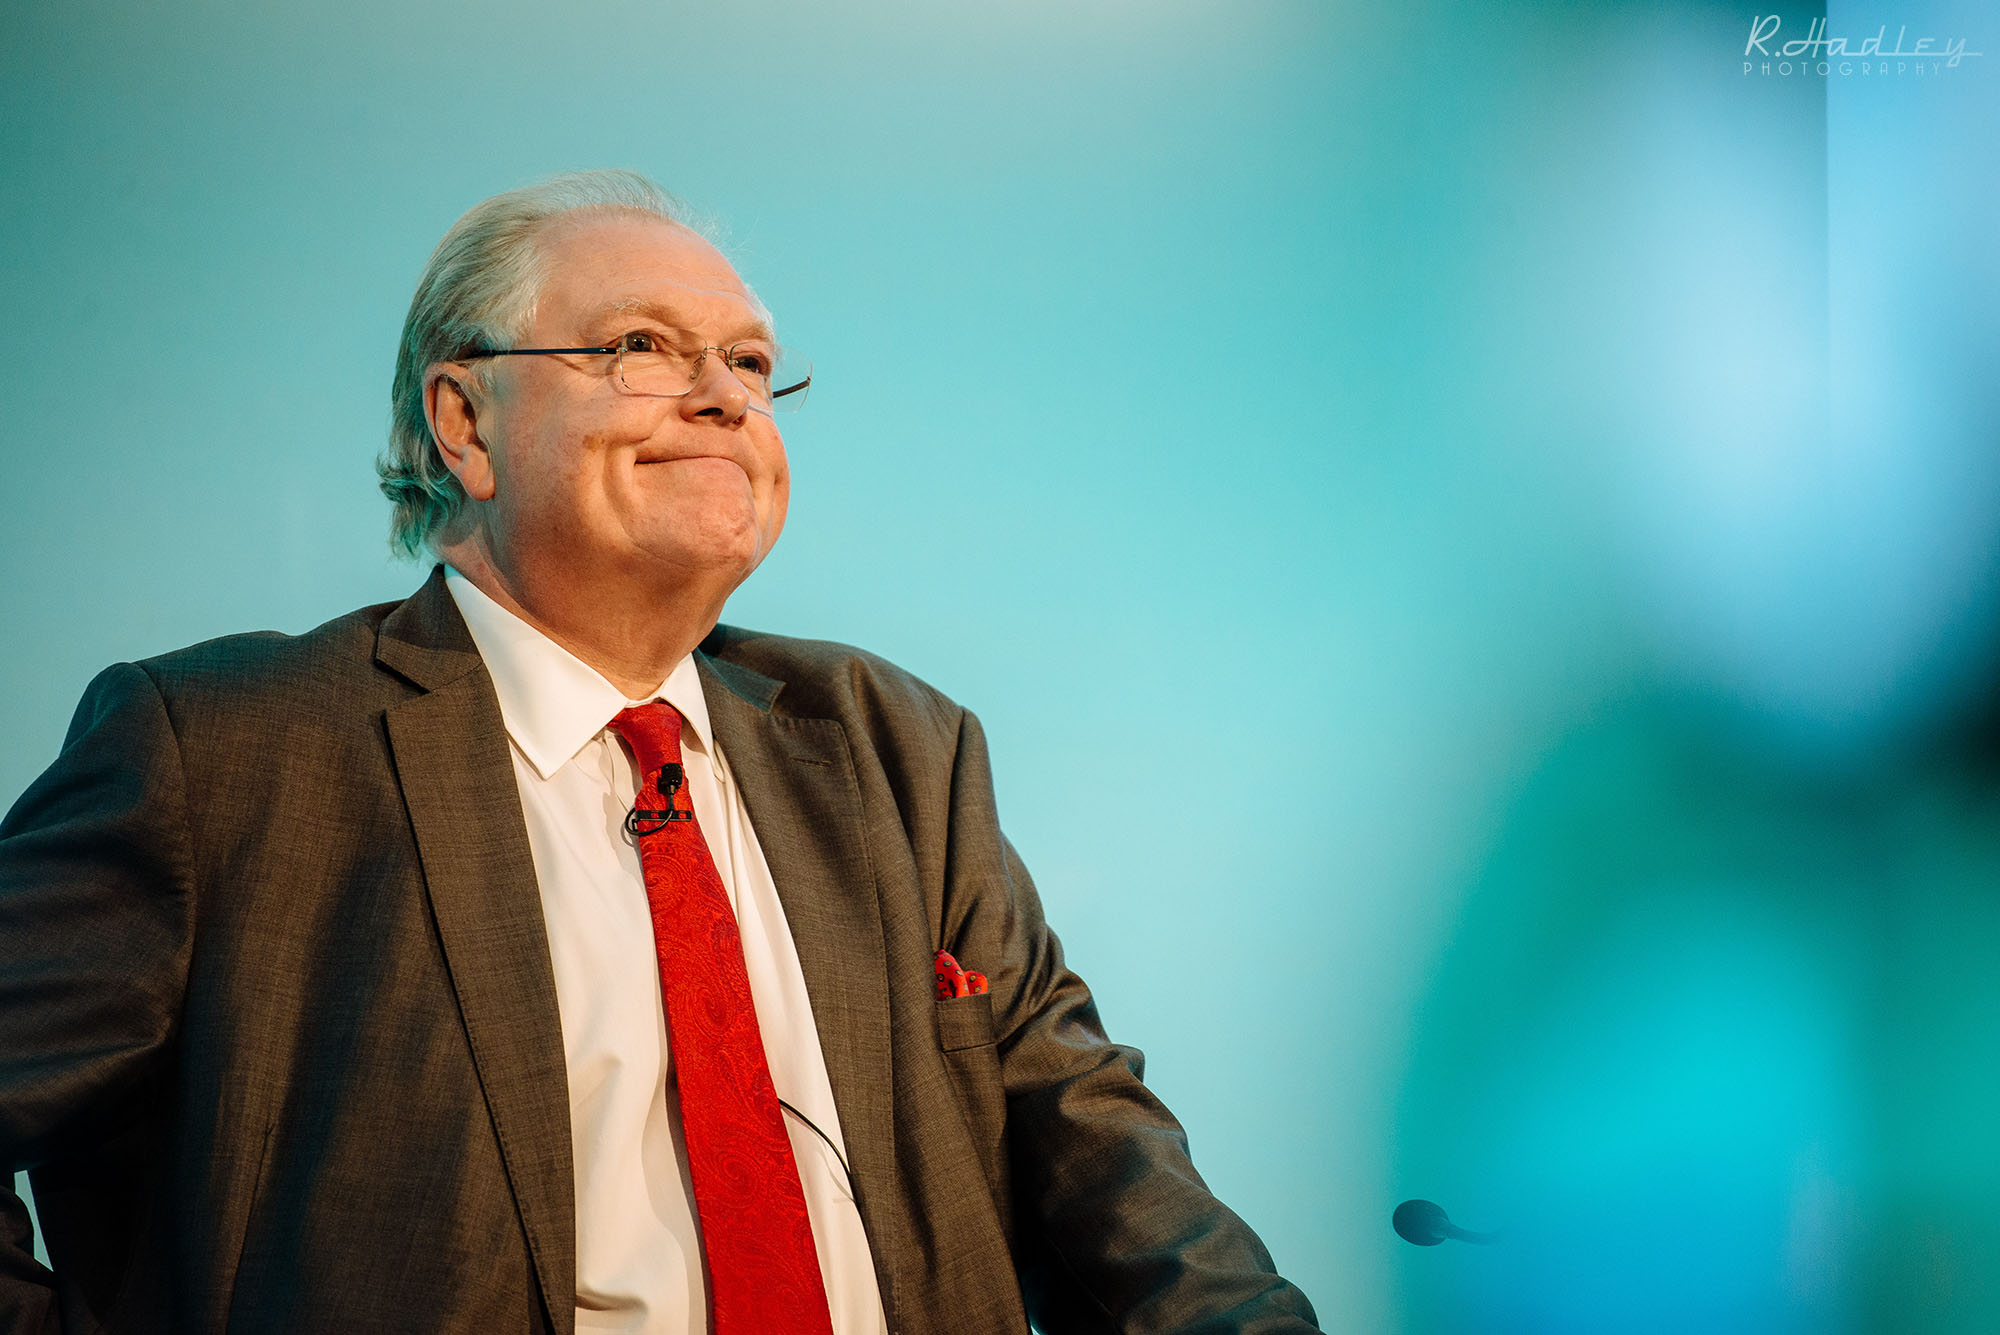 Digby Jones speaking at a Corporate Event in London